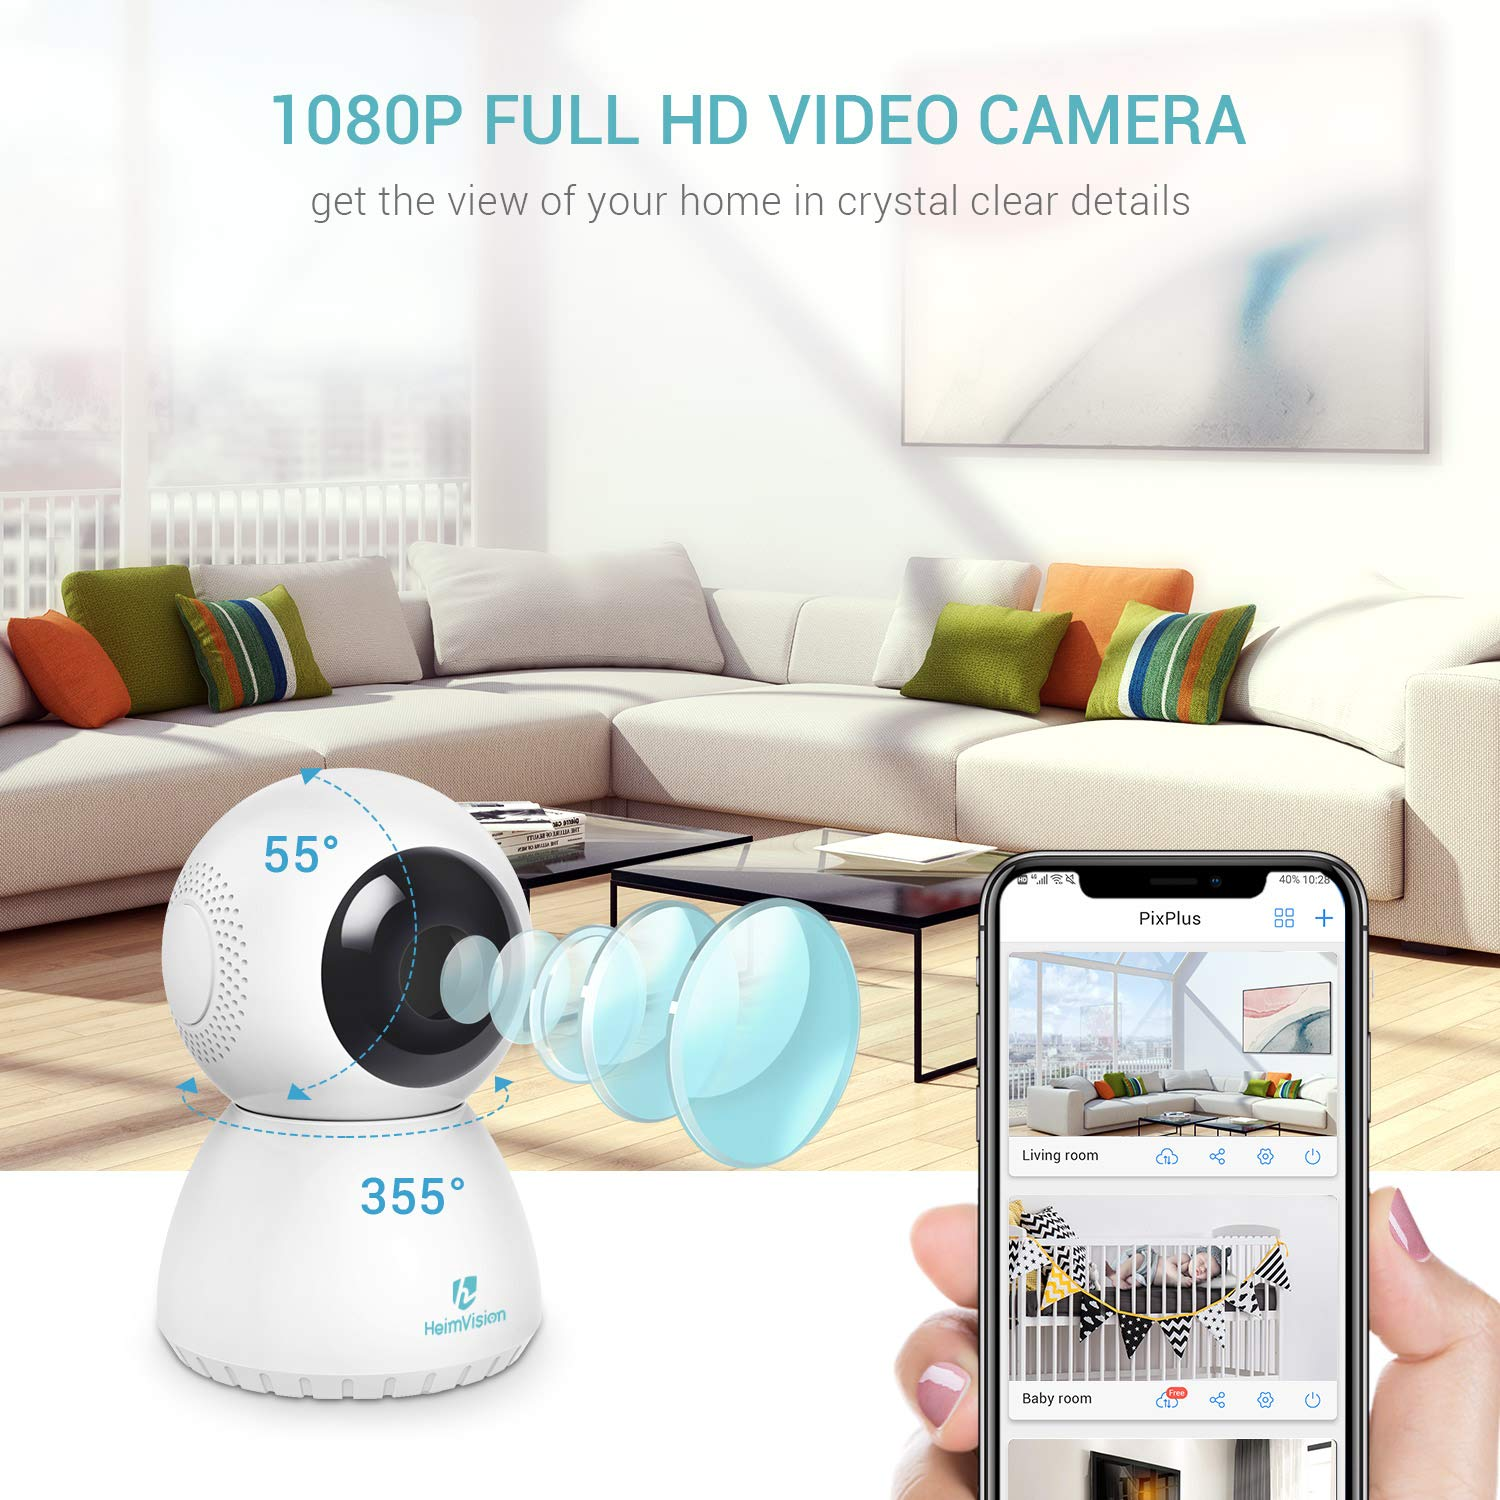 Heimvision HM205 1080P Security Camera, Works with Alexa, Night Vision, 2 Way Audio, Motion Detection, 2.4G Wireless Home Surveillance Camera for Baby/Pet/Nanny Monitor, Cloud Service/Microsd Support by HeimVision (Image #2)